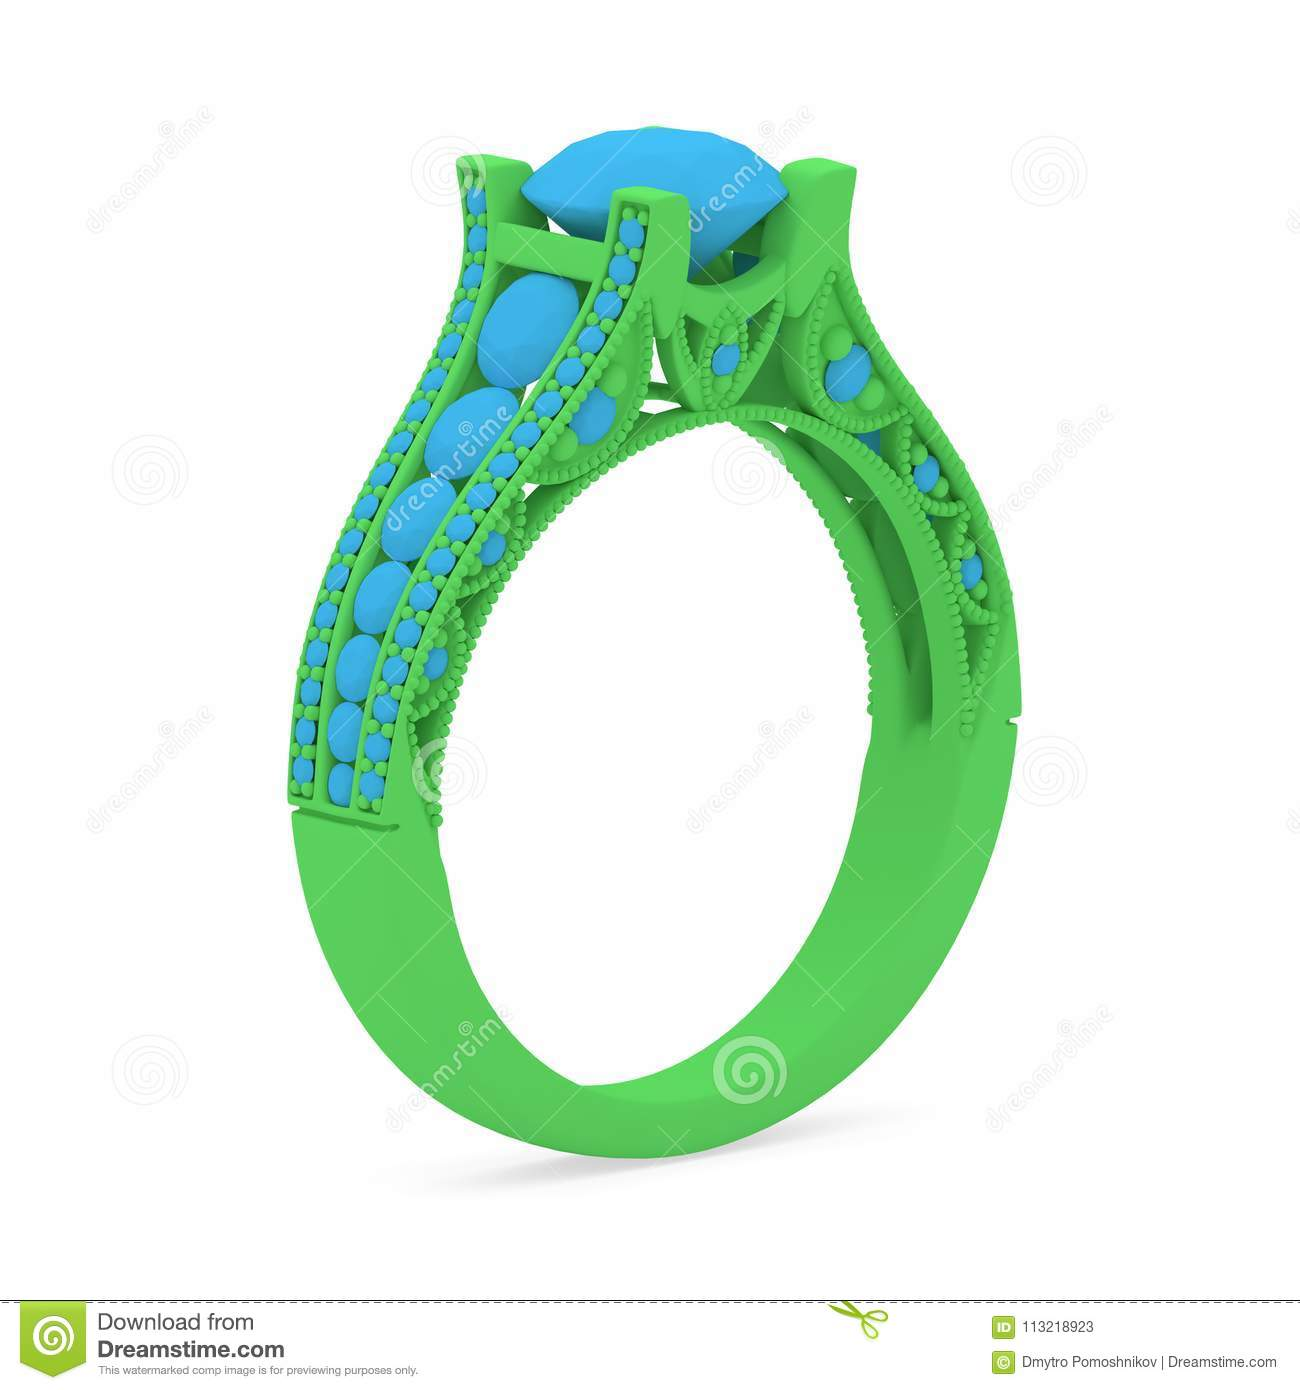 Wax 3D Print Jewelry Model Of Engagement Ring With Diamonds  3D